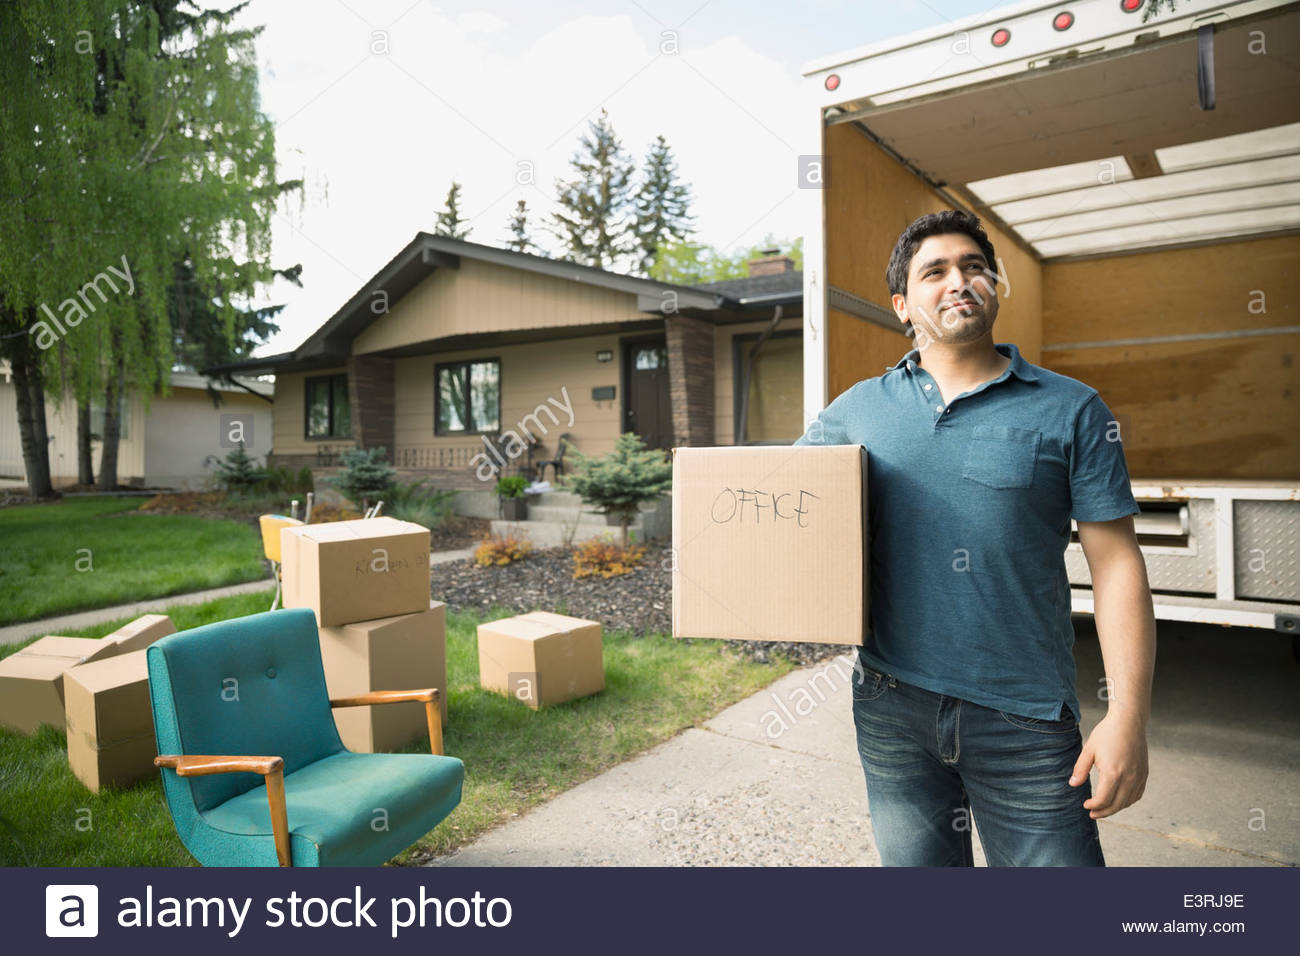 Man holding box outside moving van in driveway - Stock Image